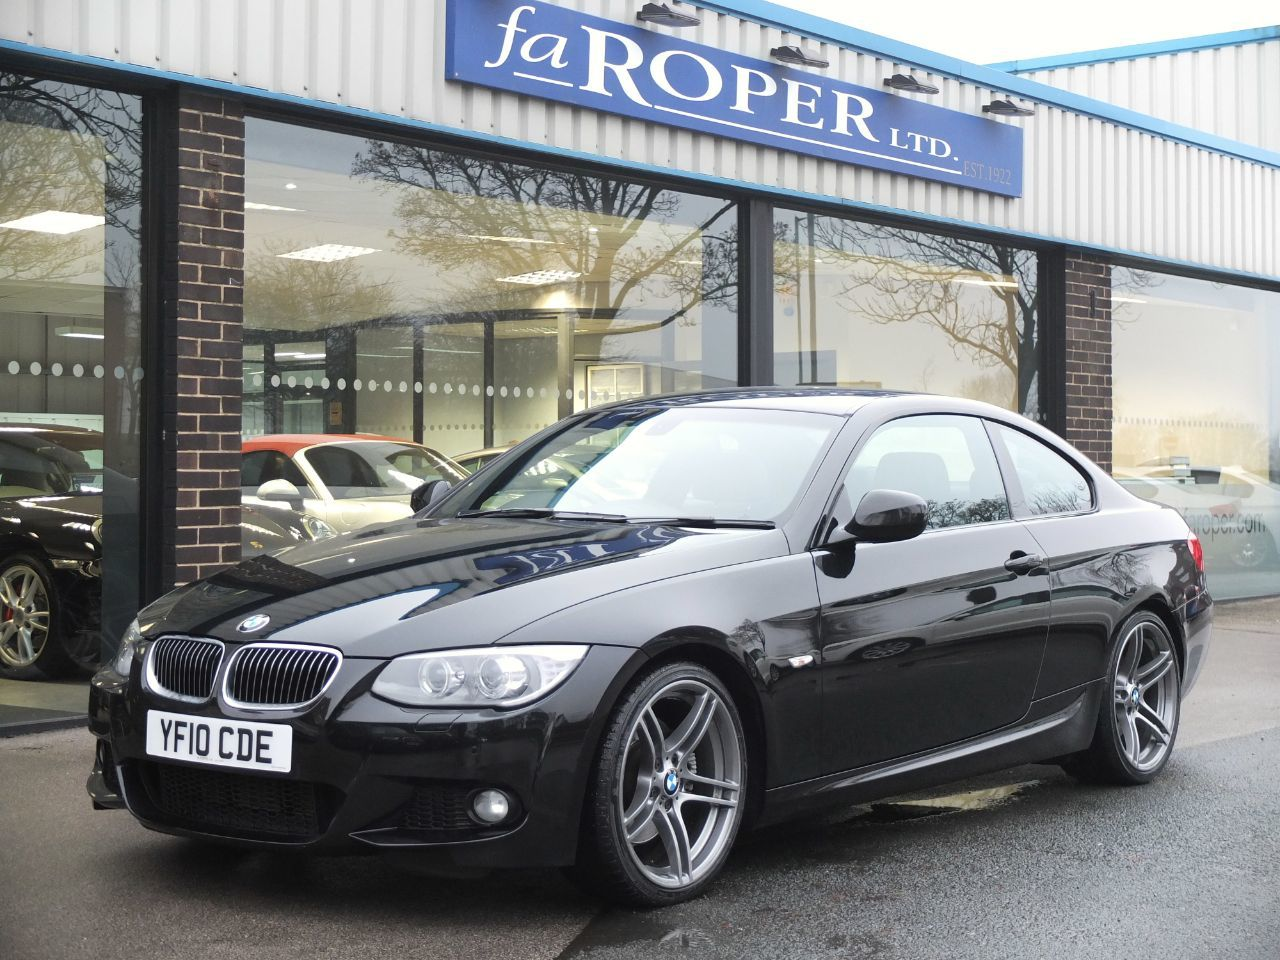 BMW 3 Series 3.0 325d M Sport Coupe 2dr Automatic +++Spec Coupe Diesel Black Sapphire MetallicBMW 3 Series 3.0 325d M Sport Coupe 2dr Automatic +++Spec Coupe Diesel Black Sapphire Metallic at fa Roper Ltd Bradford